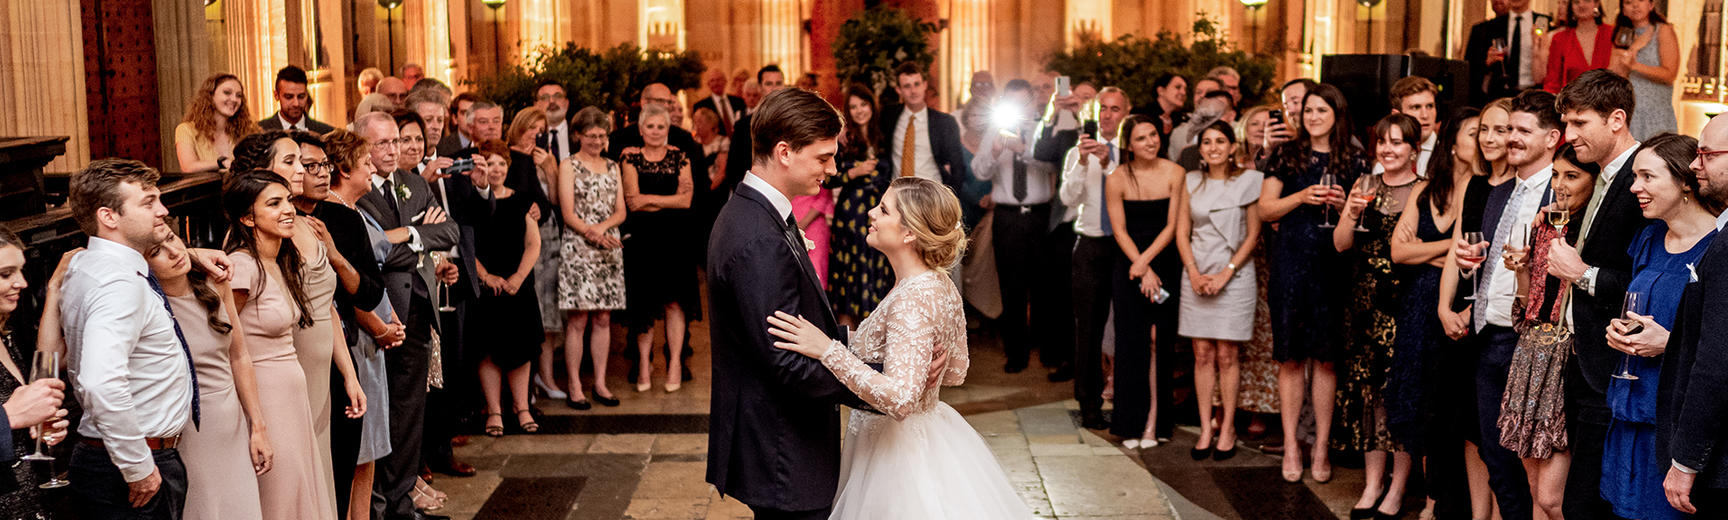 Newlyweds enjoying their first dance in Divinity School